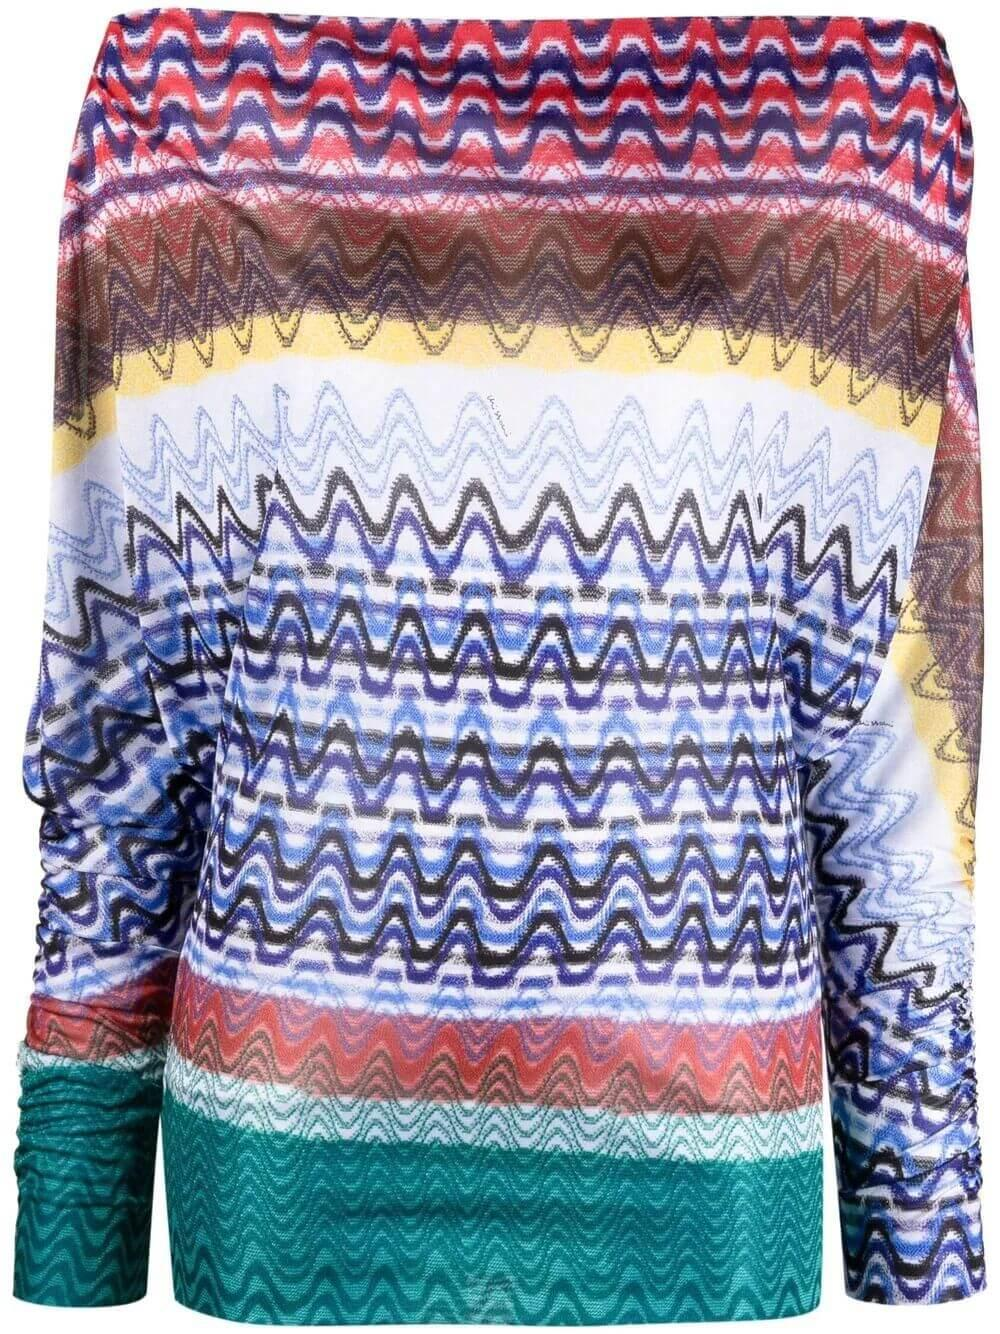 Zig Zag Off the Shoulder Top